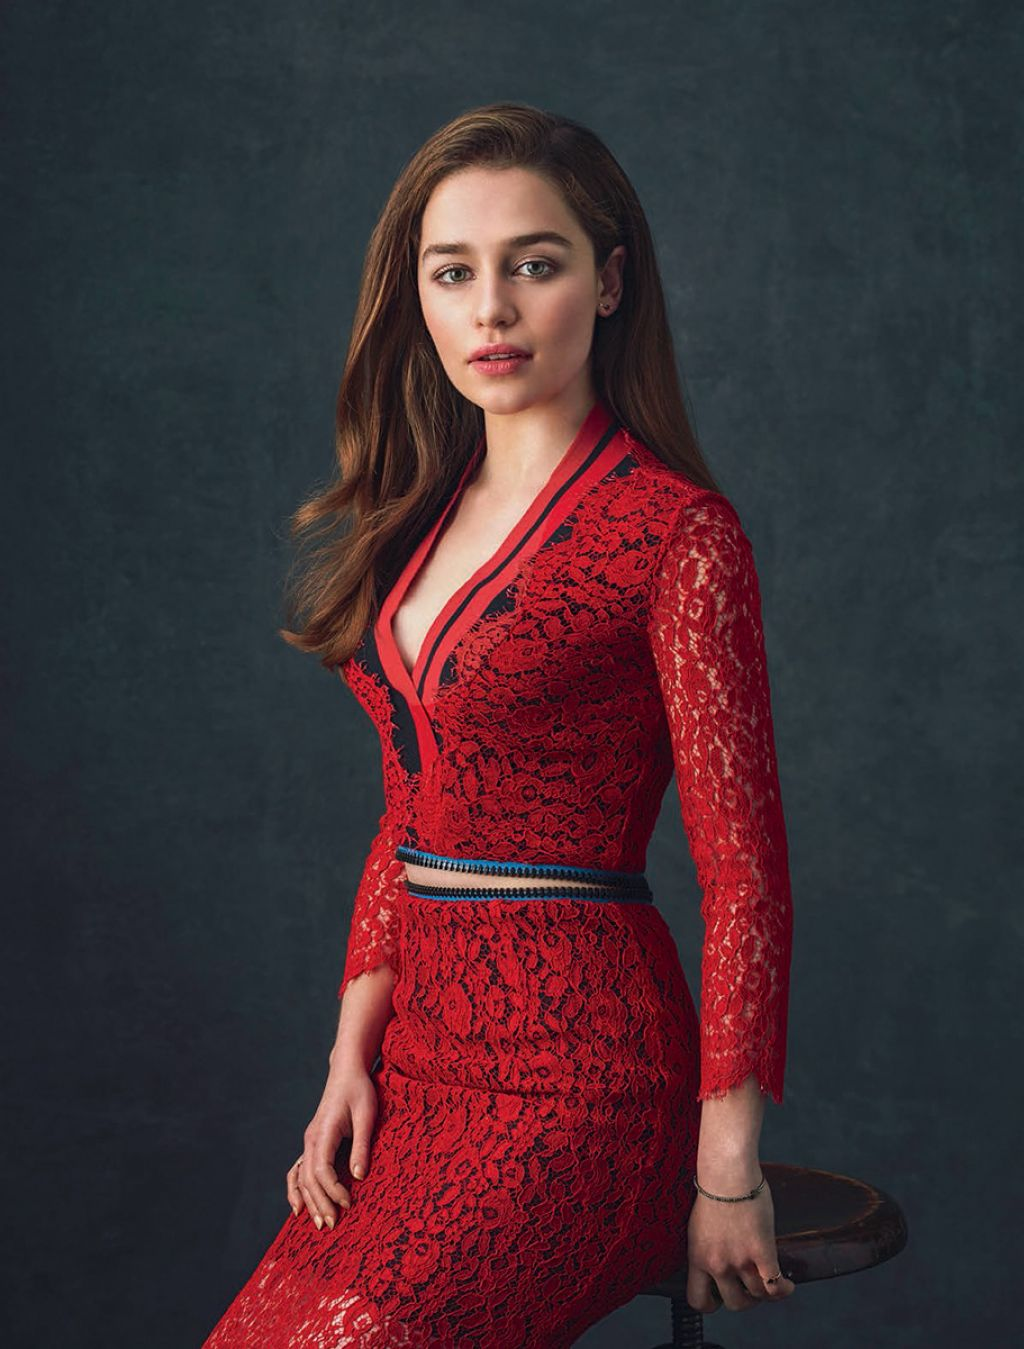 Emilia Clarke – Esquire's Gorgeous Woman Alive